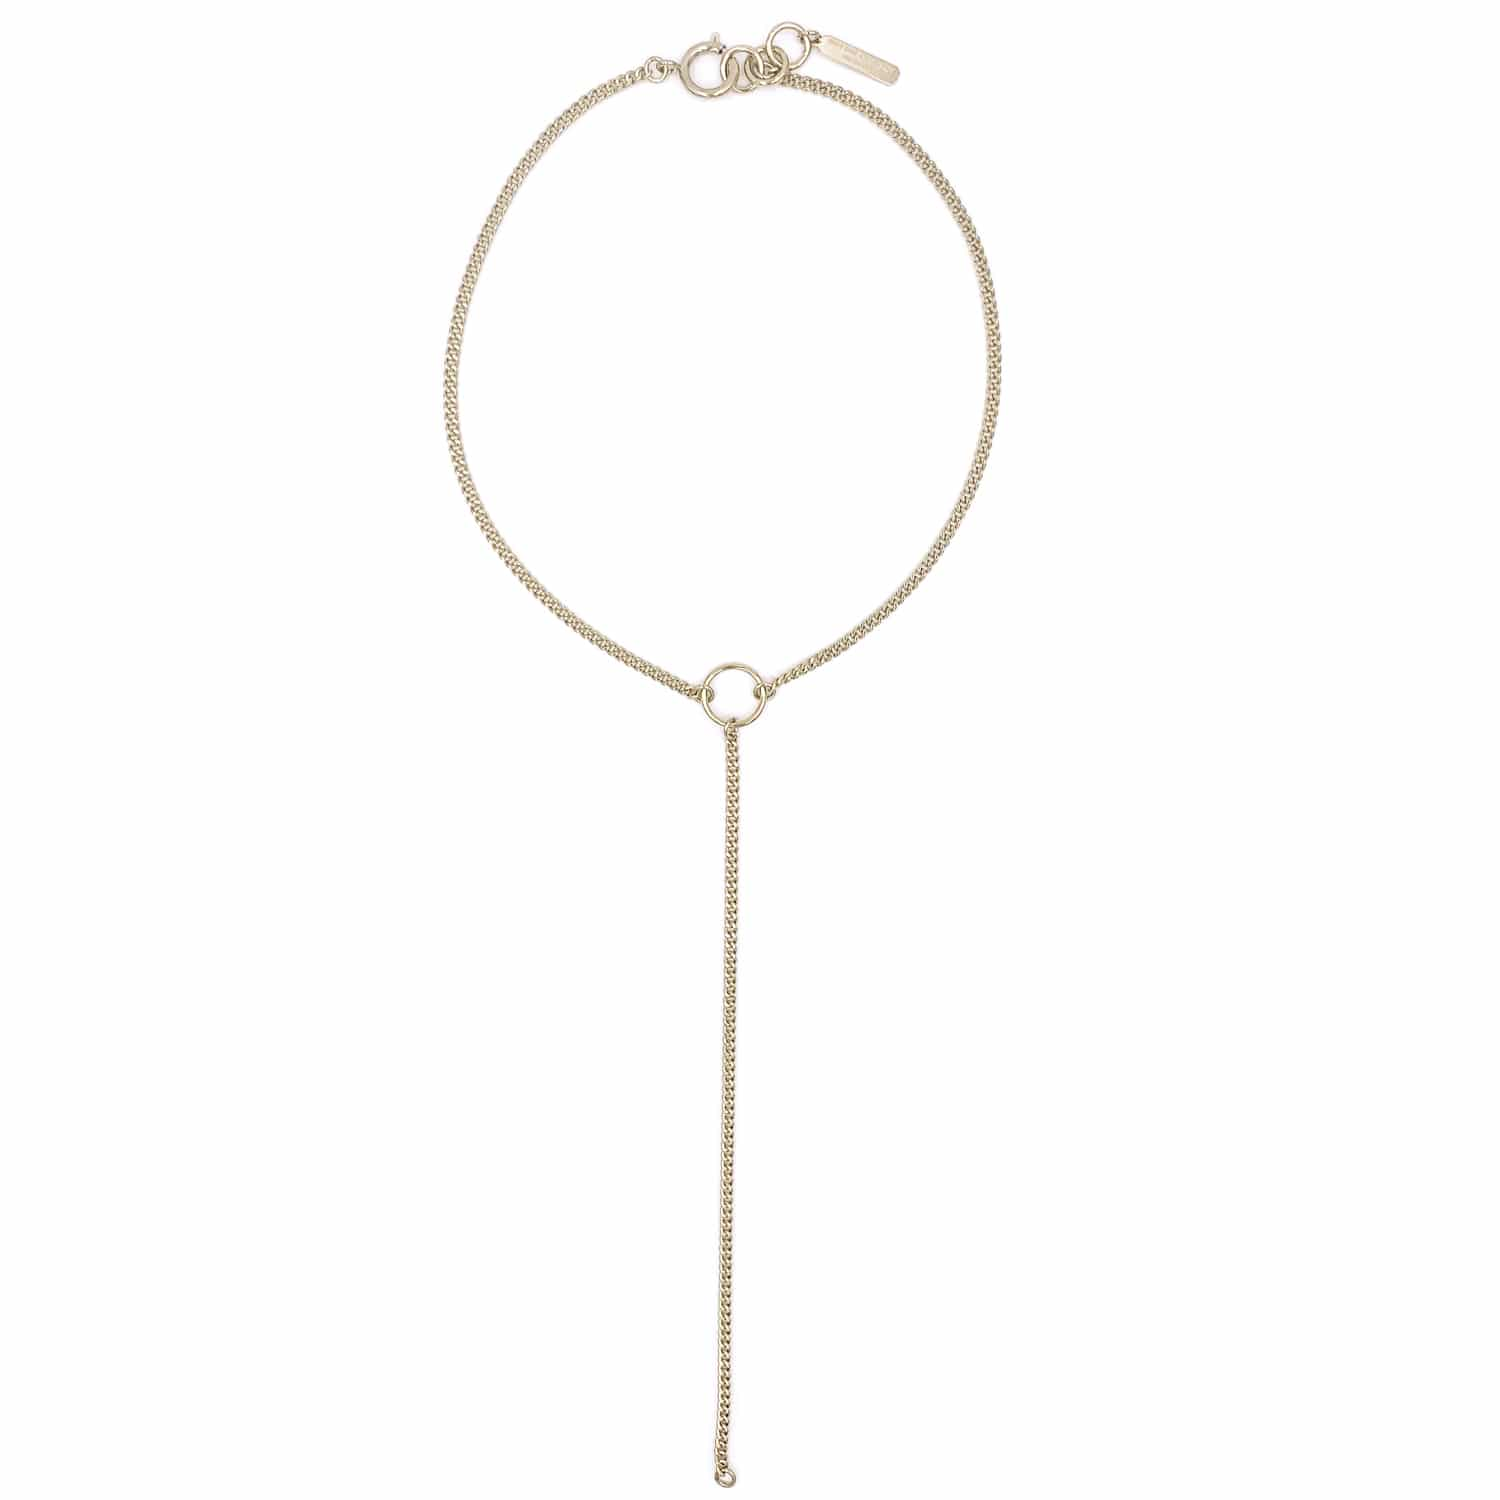 Nancy Gold Choker-50m London